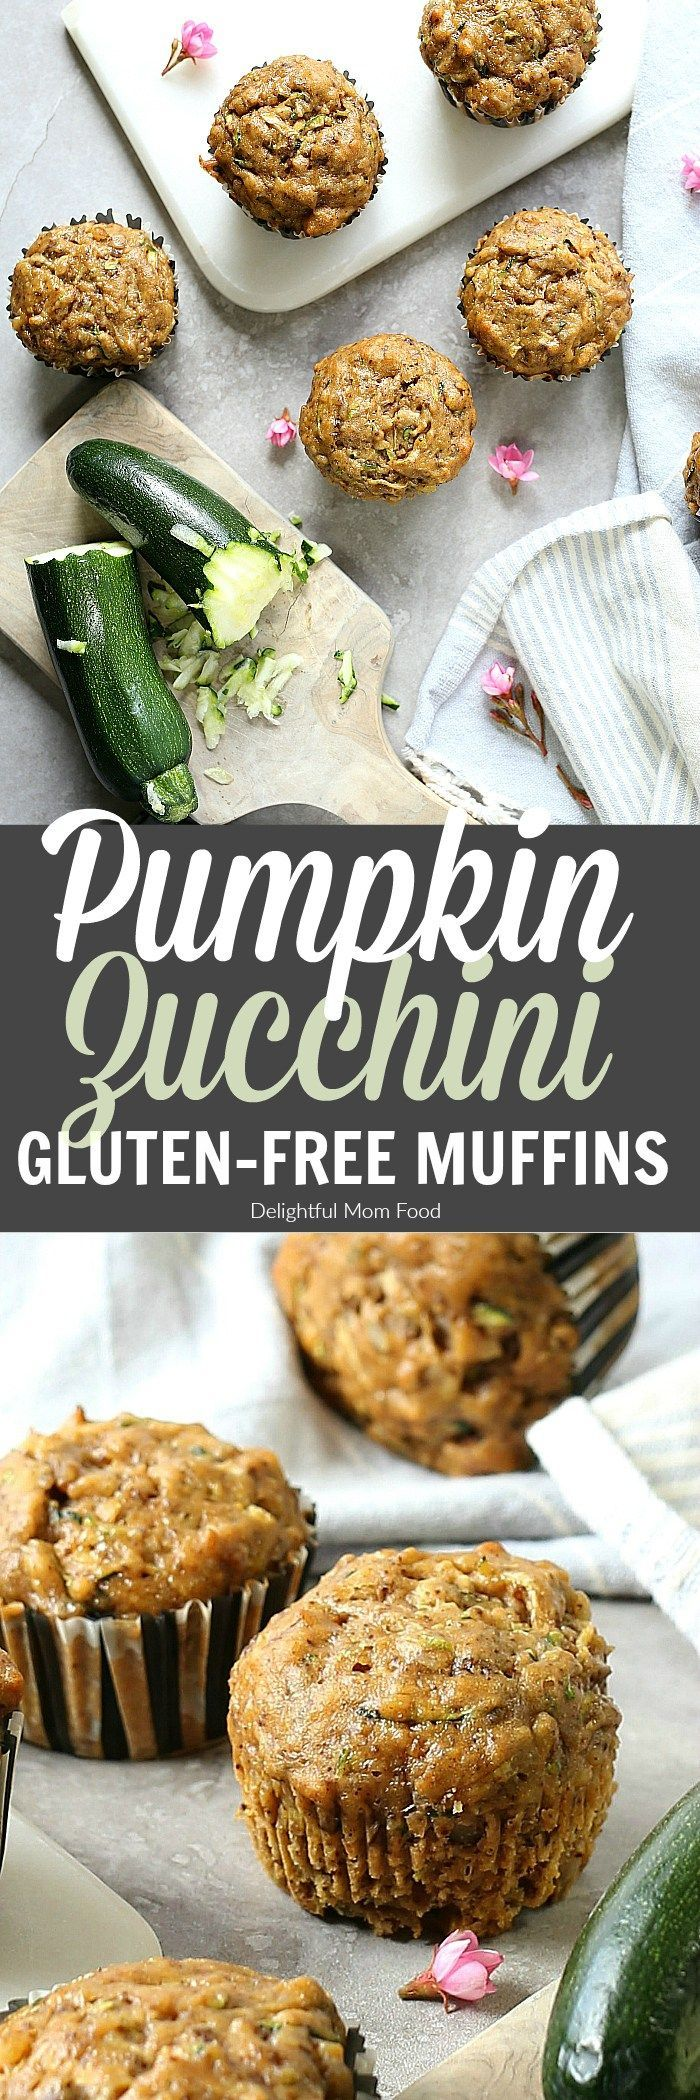 Pumpkin Zucchini Muffins (Gluten-Free) Light and fluffy pumpkin zucchini muffins made with gluten-free flours, zucchini and pumpkin! A healthy gluten-free muffin and great way to get veggies in the morning! #pumpkin | Recipe at